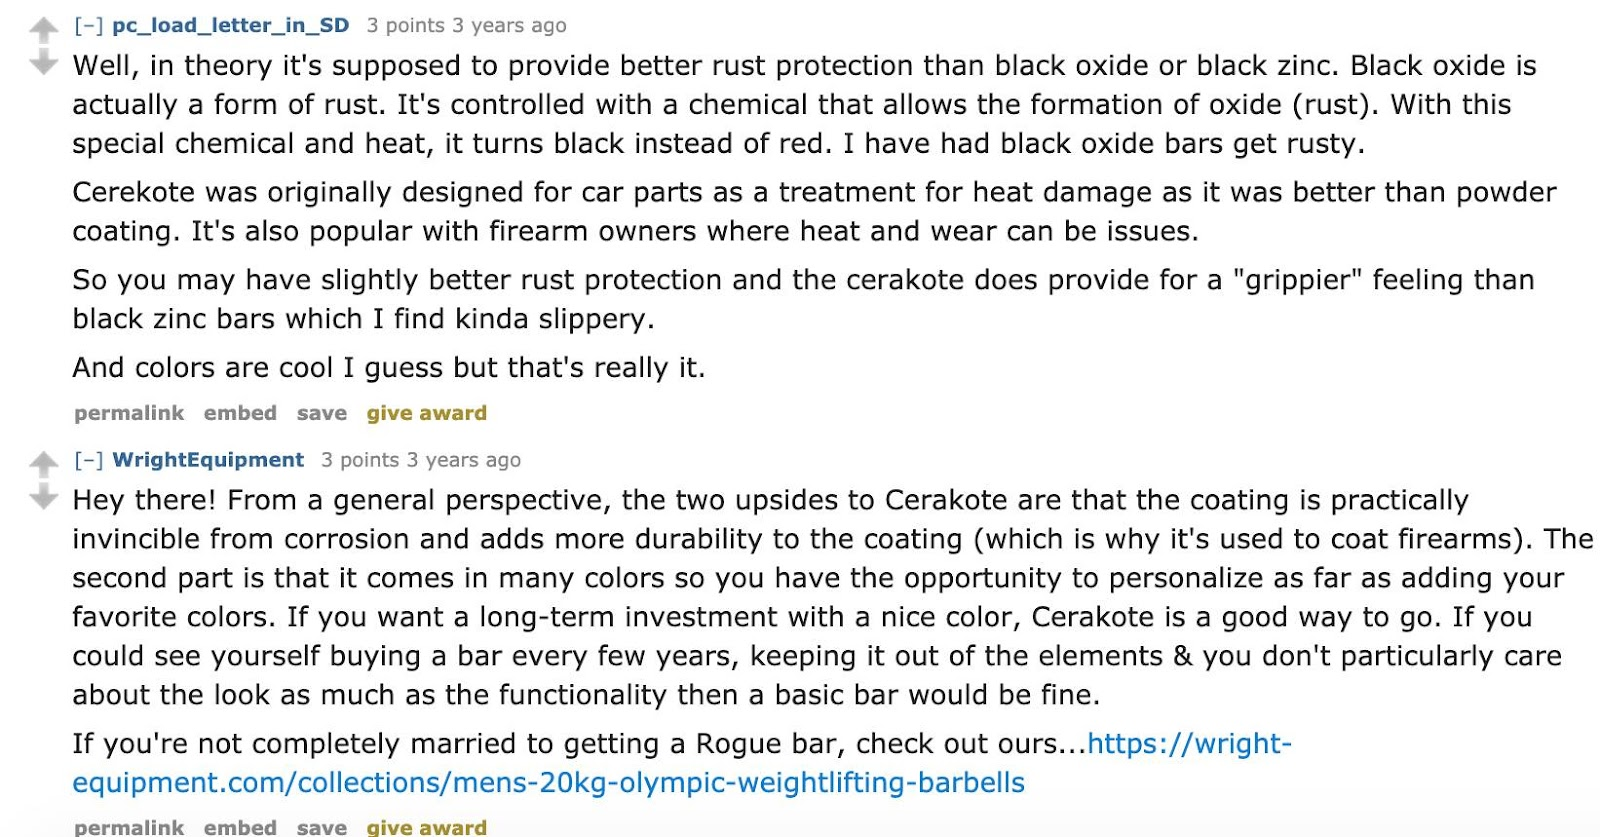 Reddit user pc_load_letter_in_SD talks about Cerakote being used for rust protection and Reddit user WriteEquipment claims that Cerakote is 'practically invincible.'